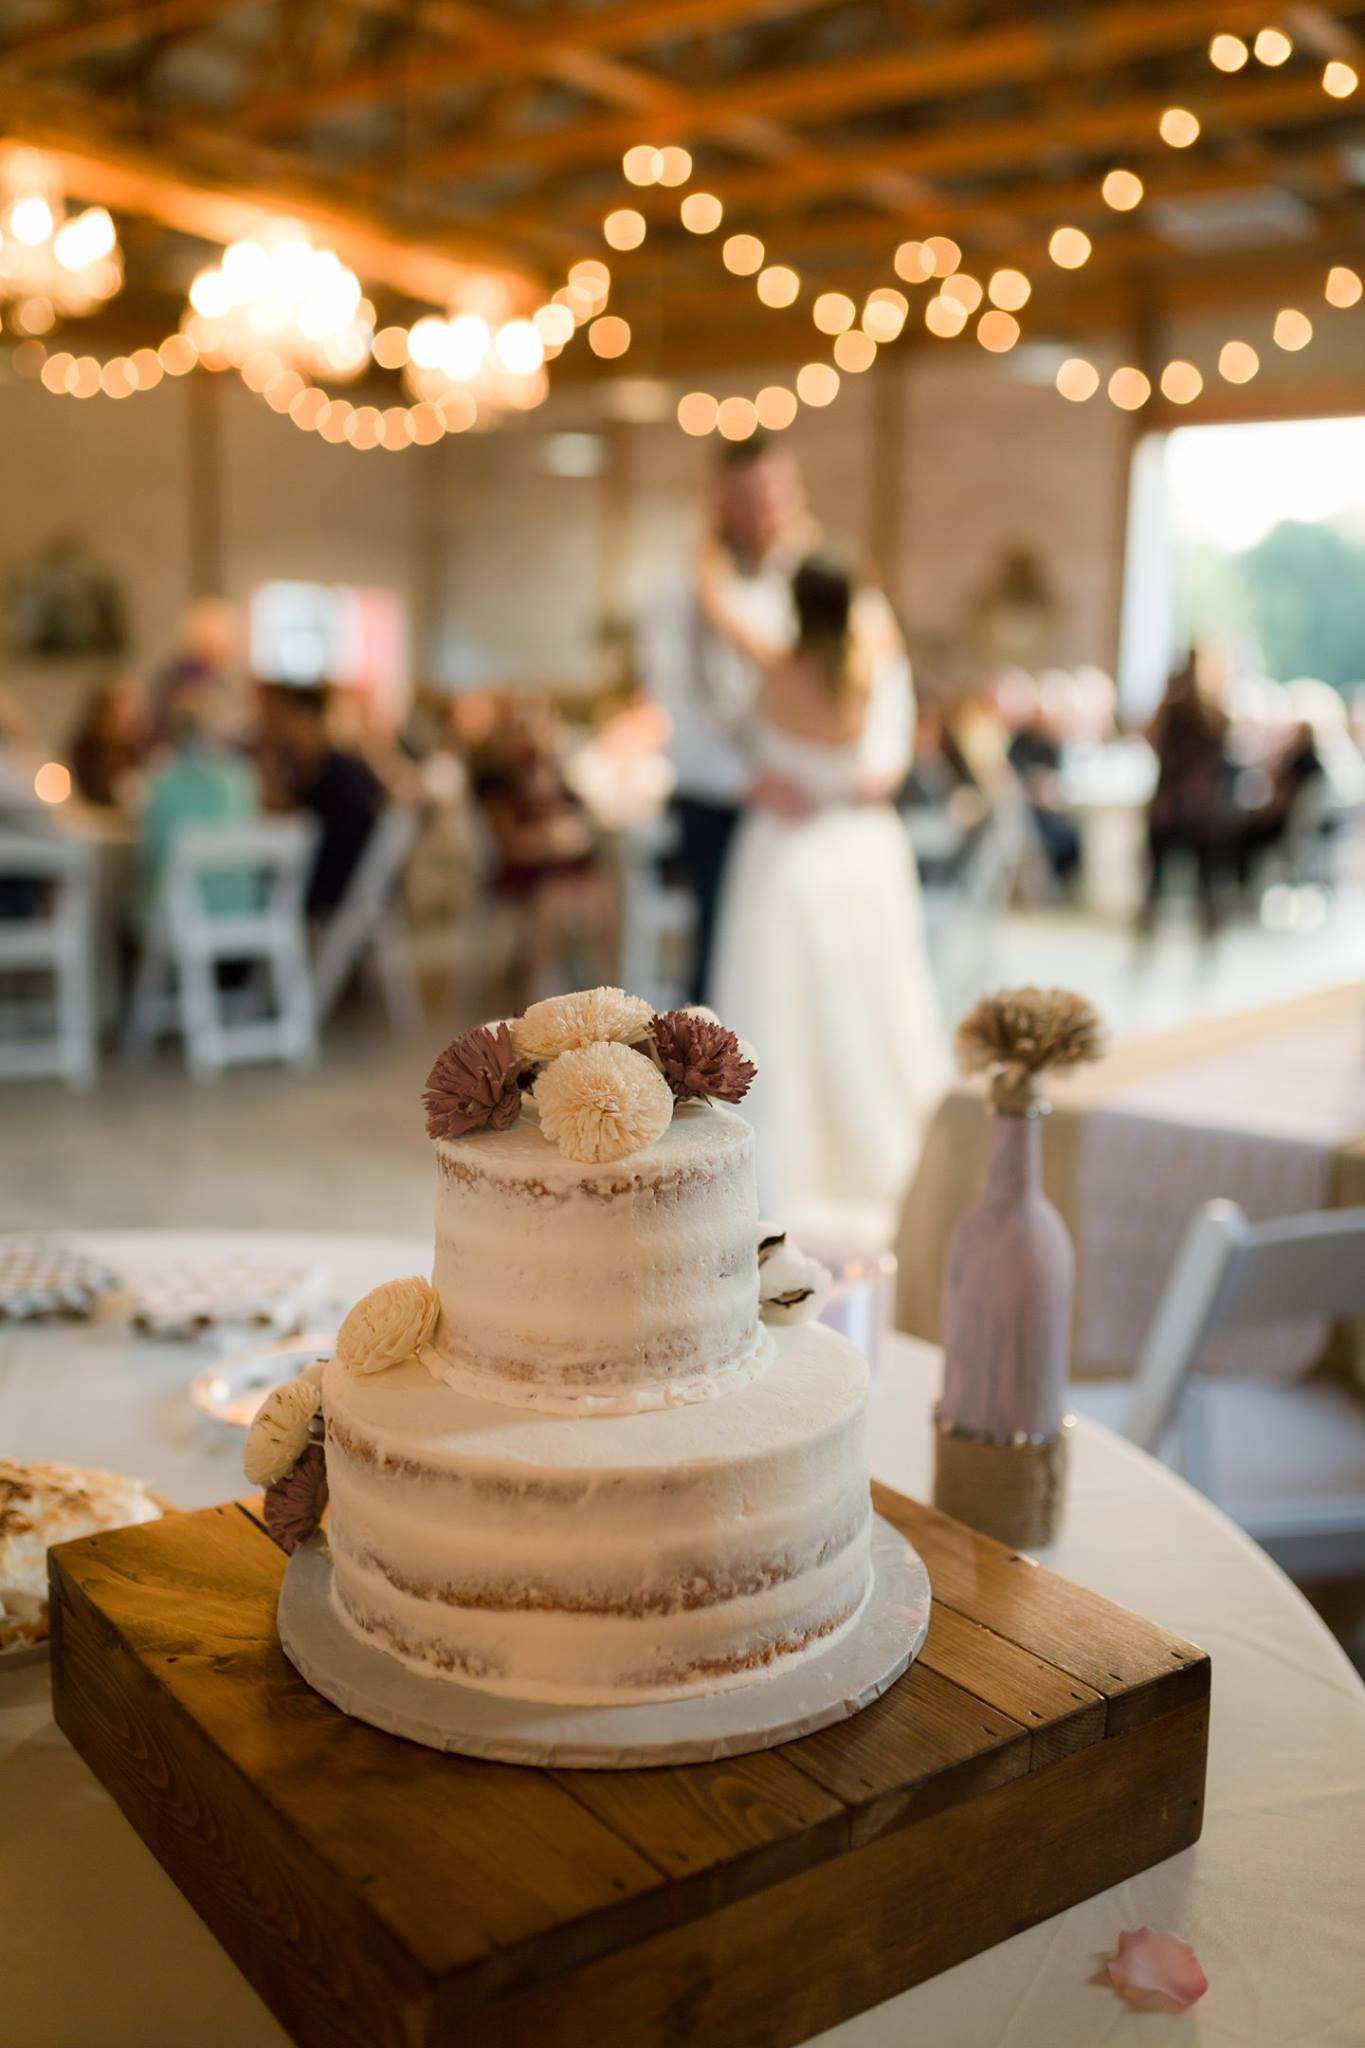 Cake detail in Barn.jpg